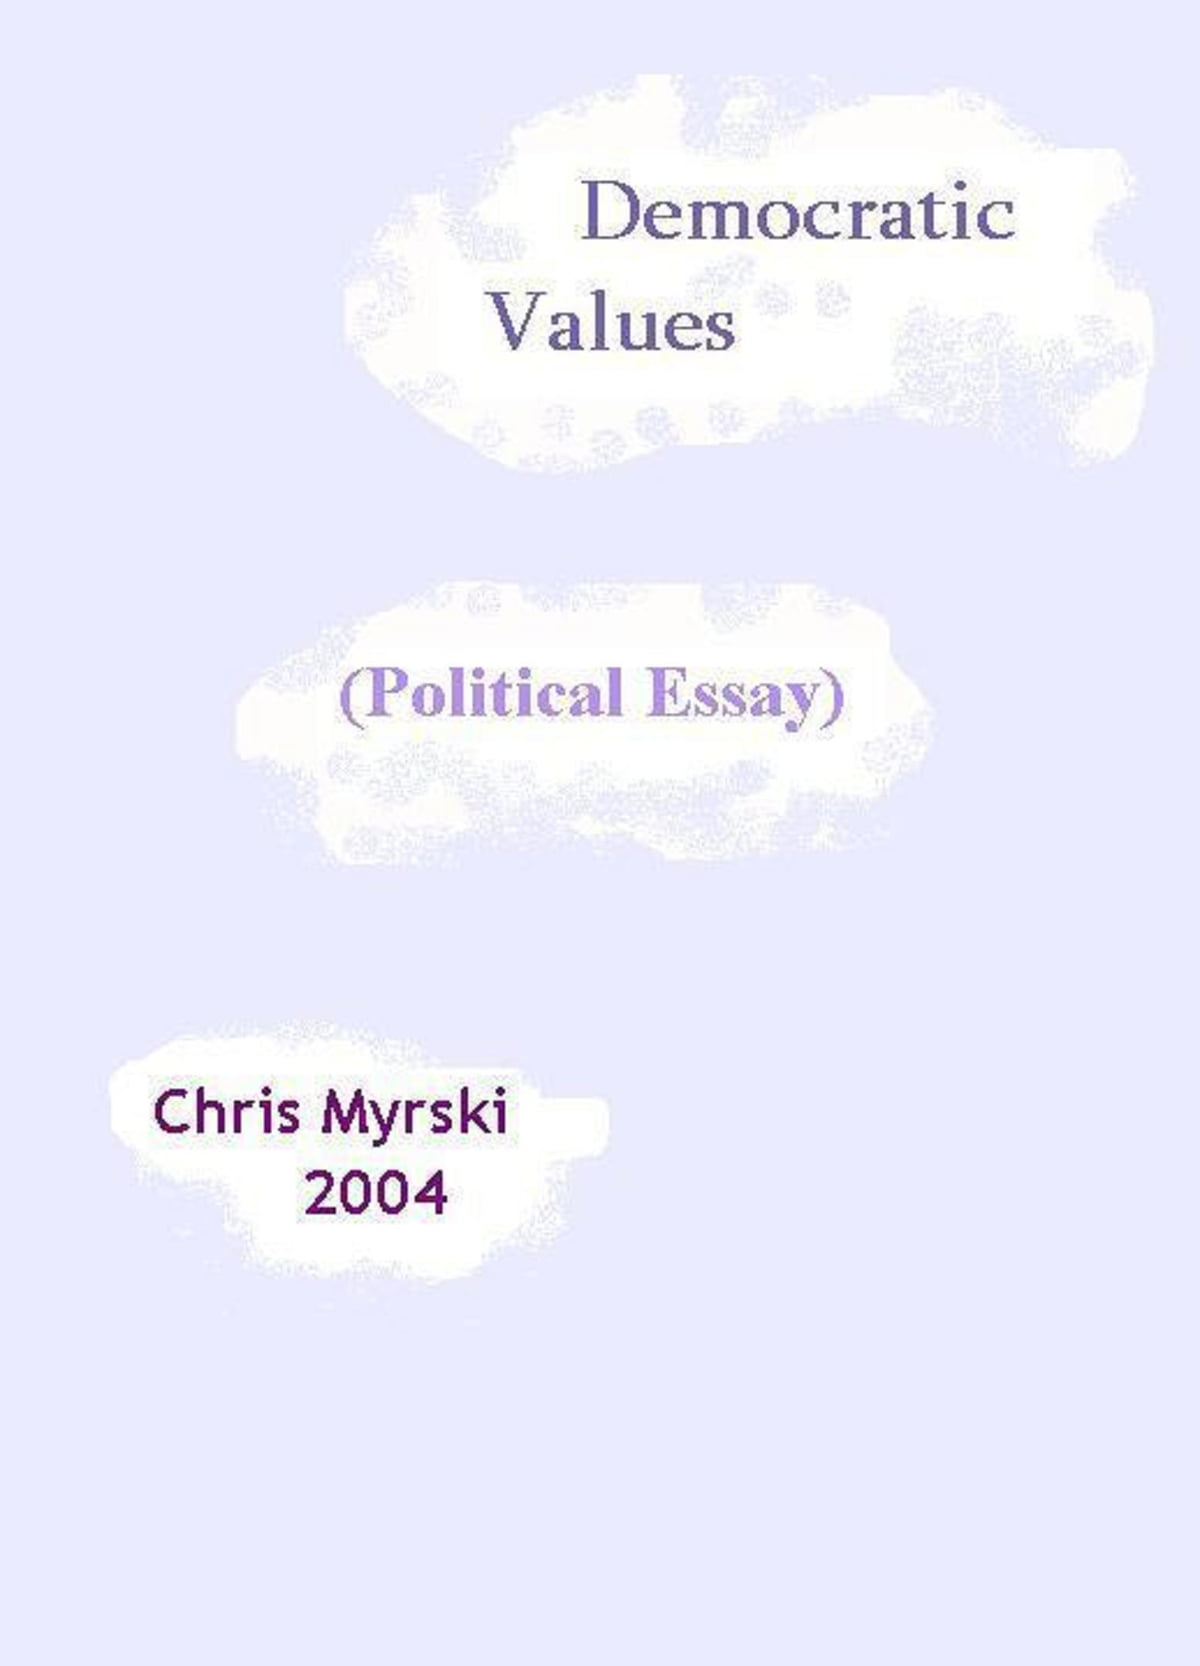 Example English Essay Democratic Values Political Essay Ebook By Chris Myrski     Rakuten Kobo Essays Topics For High School Students also Examples Of Thesis Statements For Persuasive Essays Democratic Values Political Essay Ebook By Chris Myrski  Custom Essay Paper